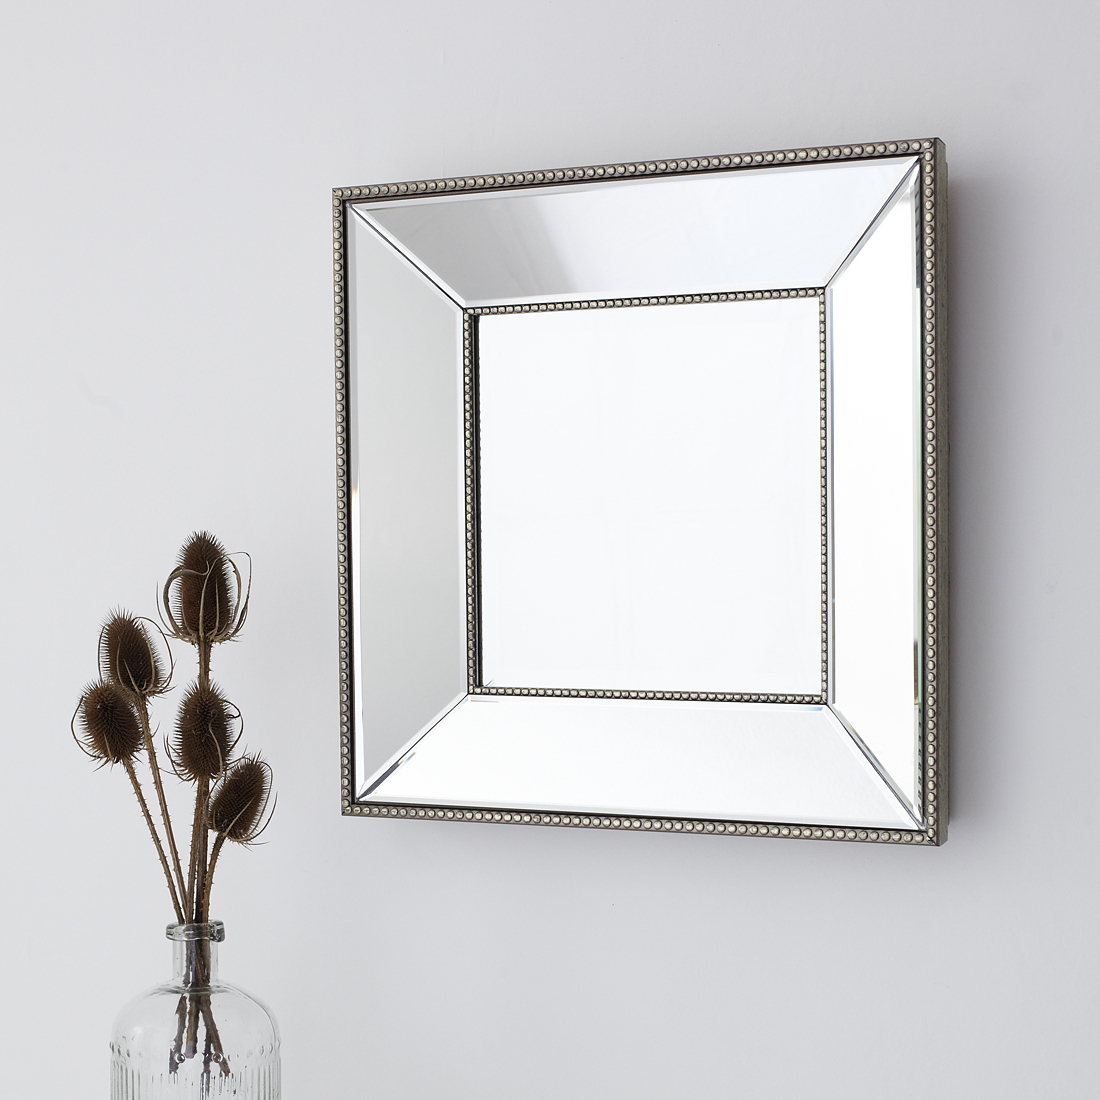 Decorative Wall Mirrors Regarding Most Recently Released Small Beaded Square Wall Mirror (View 10 of 20)